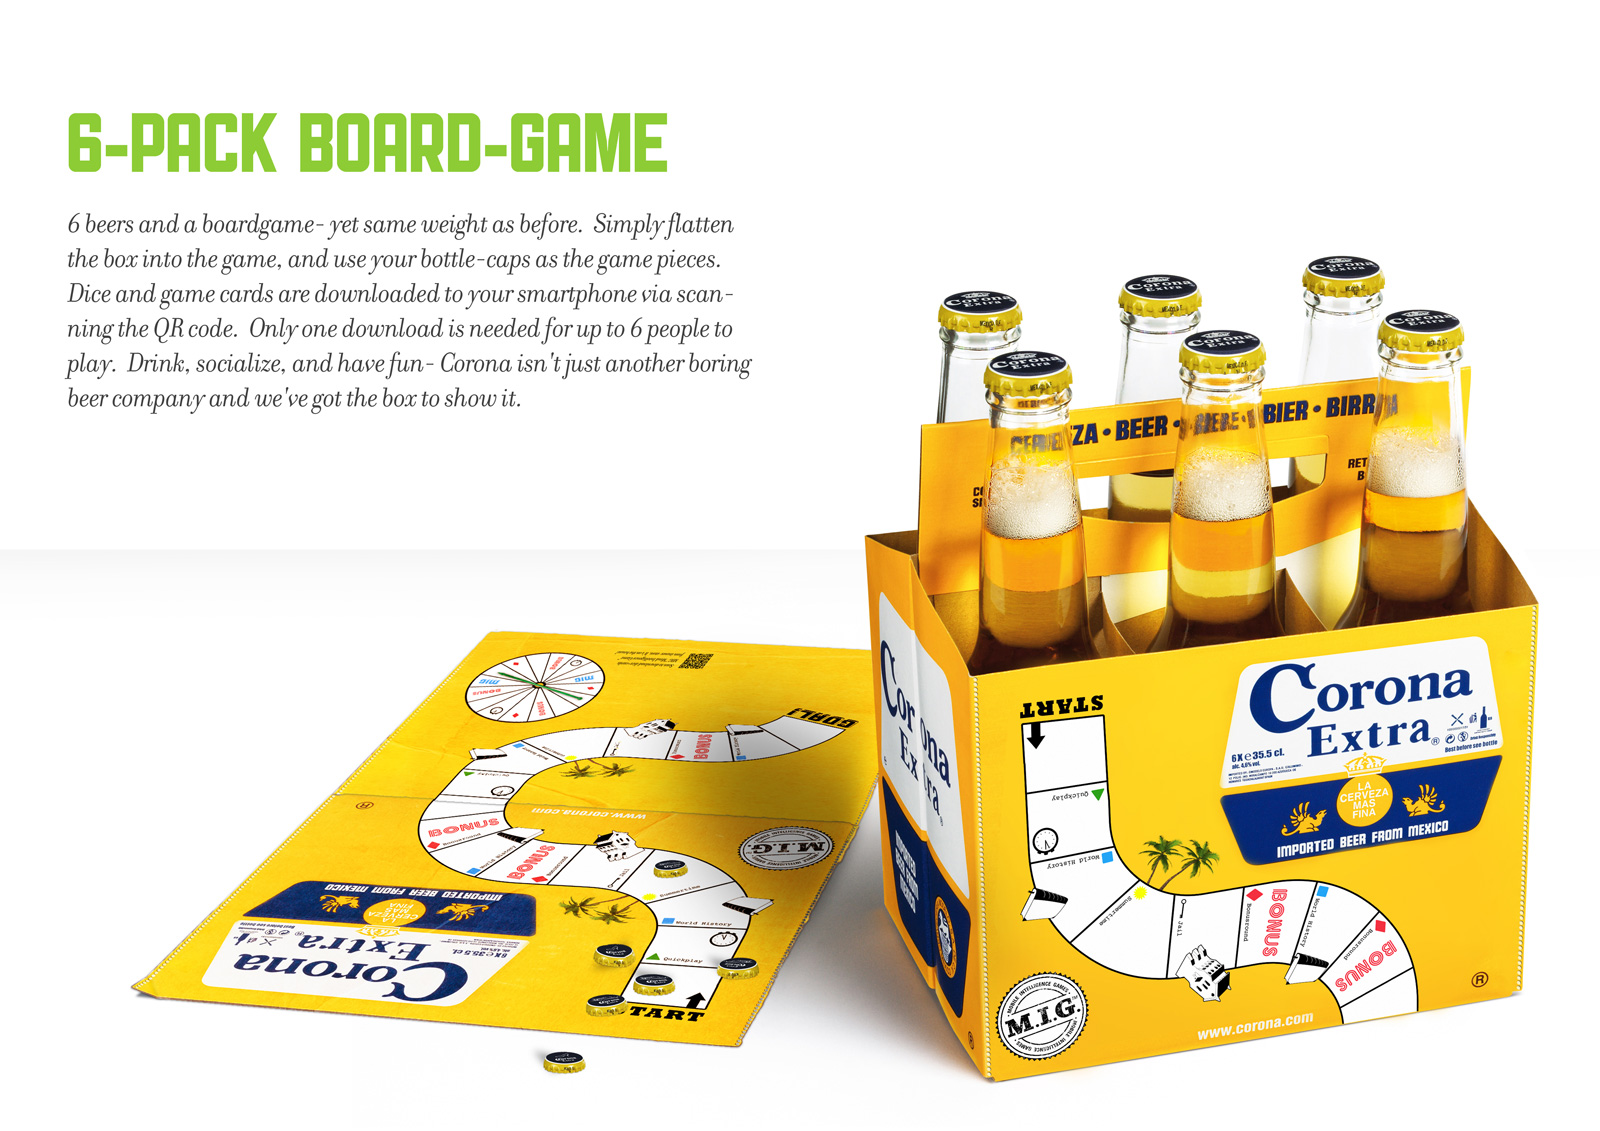 Engage consummers with clever packaging – Corona board game